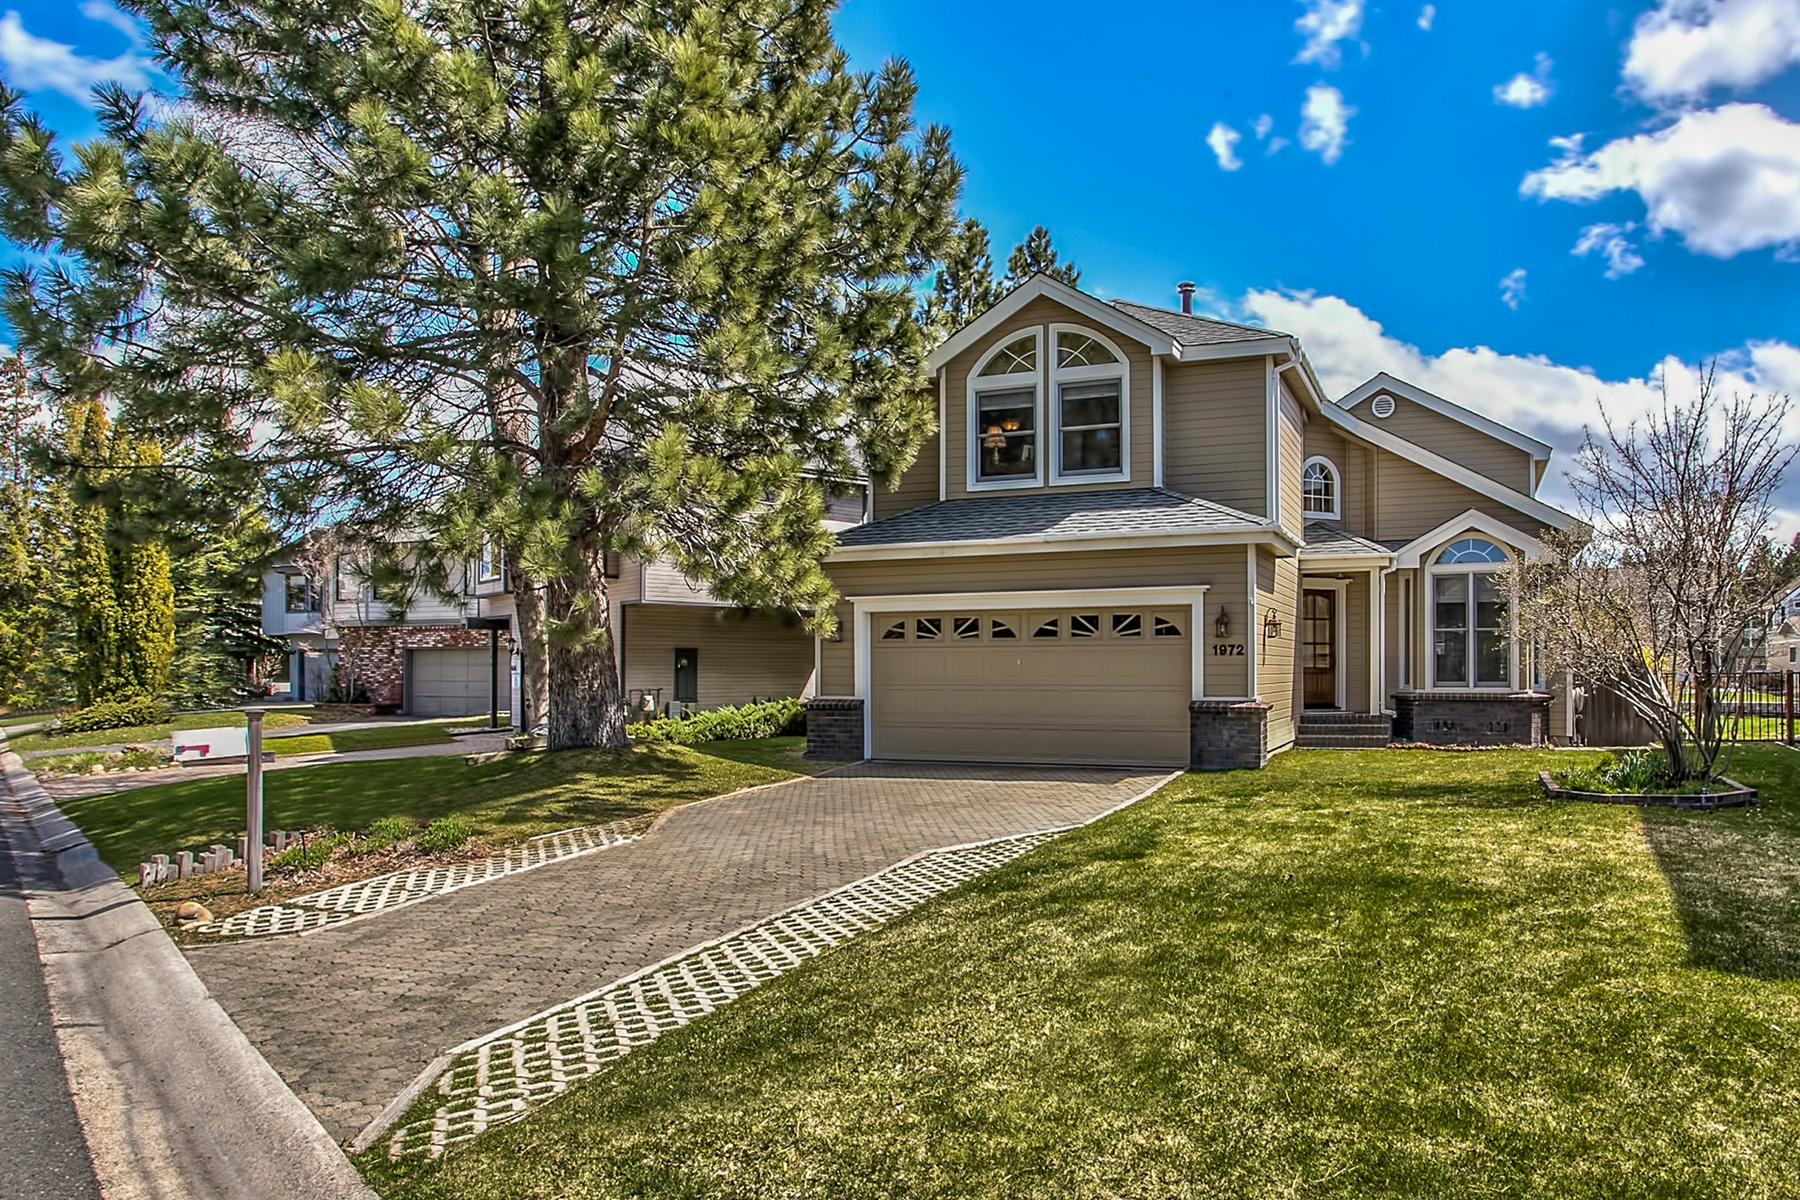 Single Family Home for Active at 1972 Marconi Way South Lake Tahoe, California 96150 United States